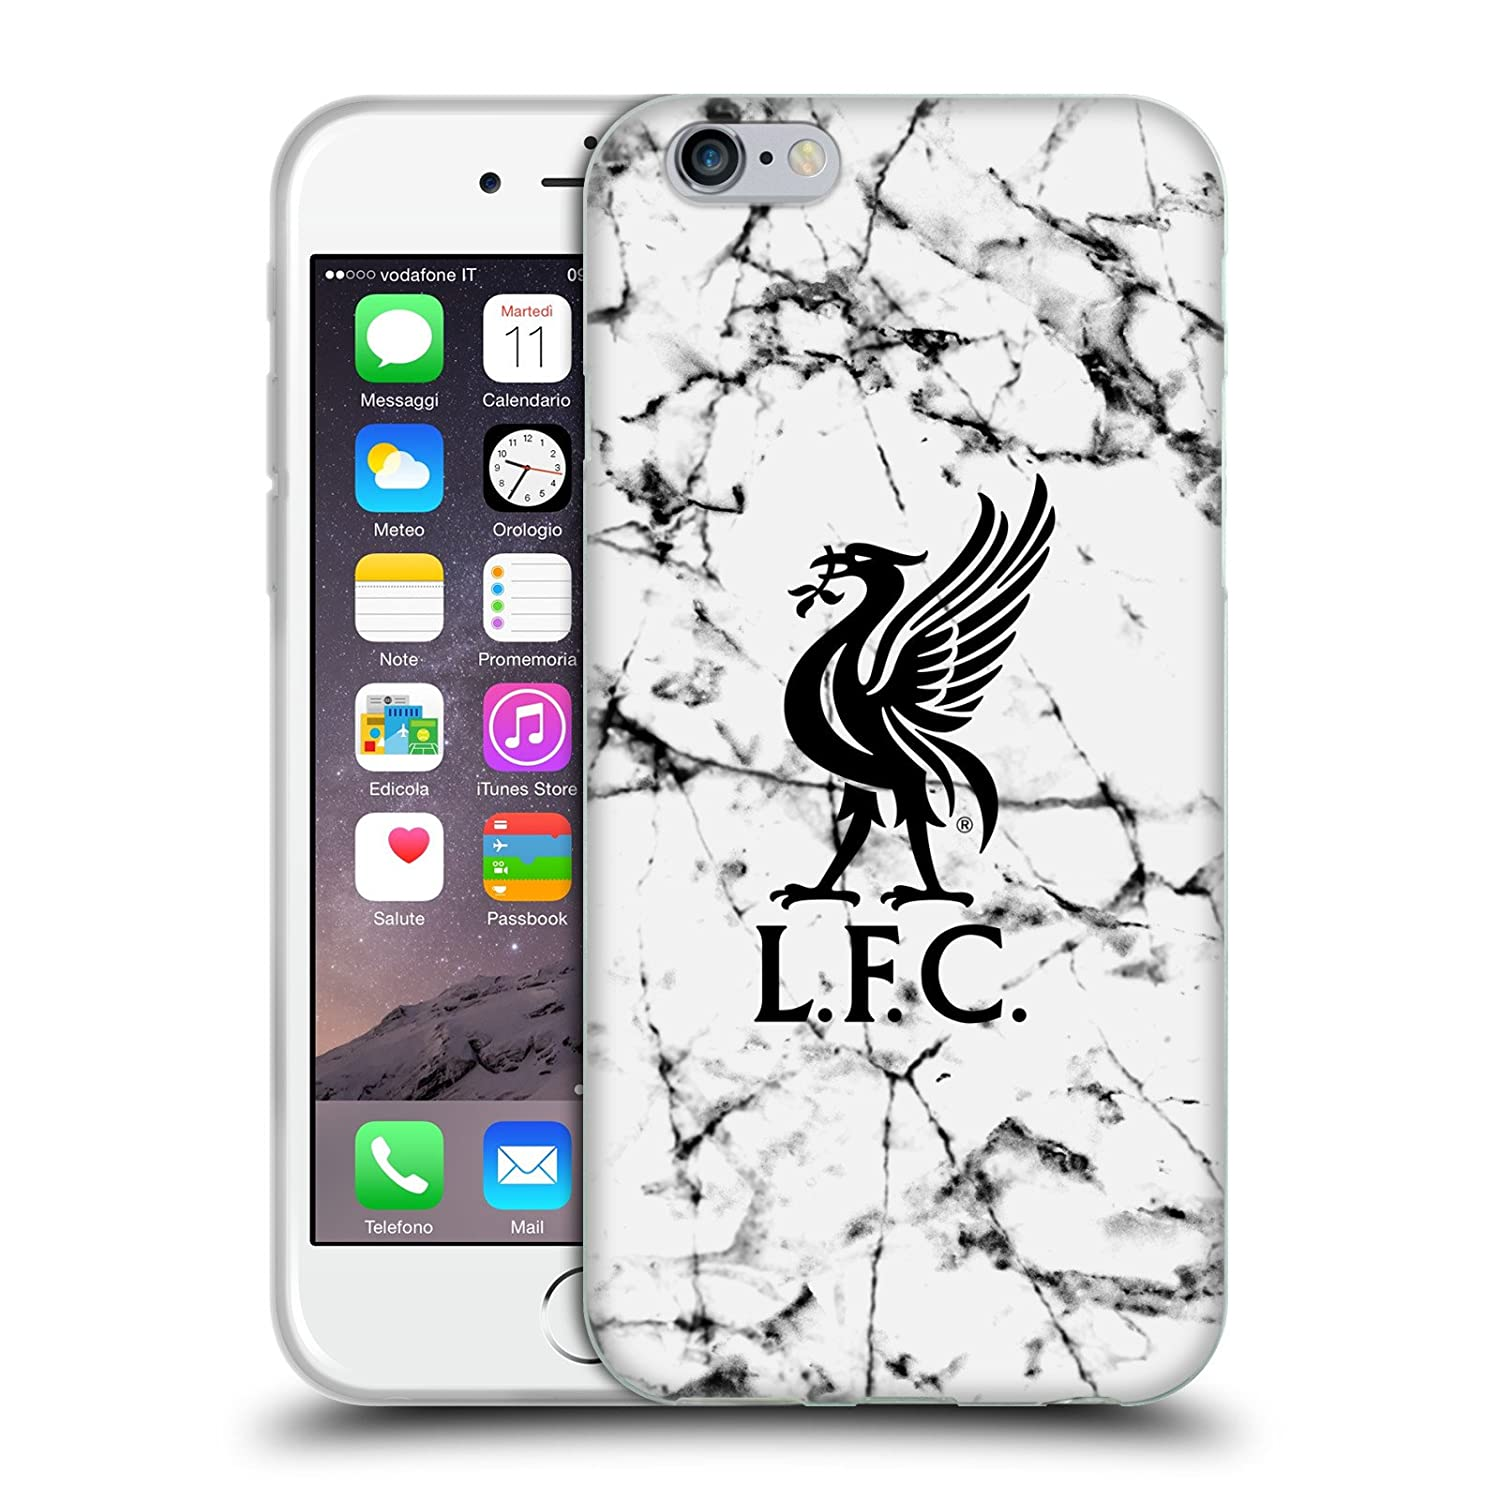 Liverpool Calendario.Official Liverpool Football Club Black Liver Bird 2017 18 Marble Soft Gel Case For Iphone 6 Iphone 6s